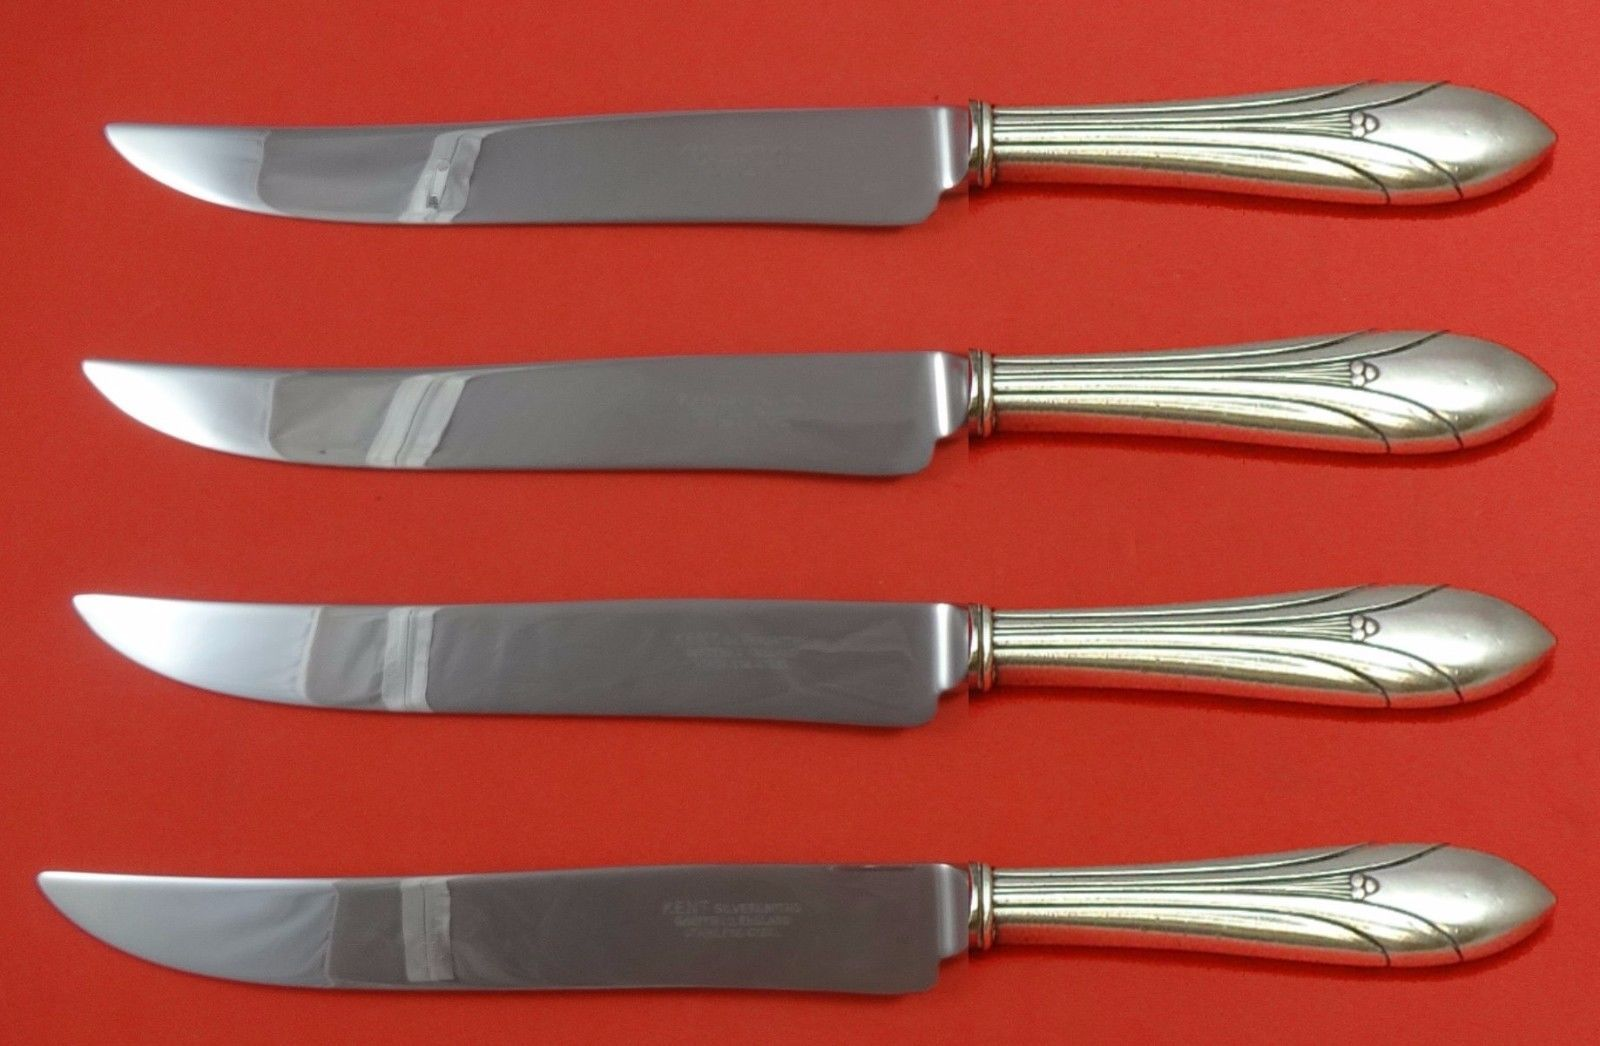 Primary image for Elsinore by International Sterling Steak Knife Set 4pc Large Texas Sized Custom